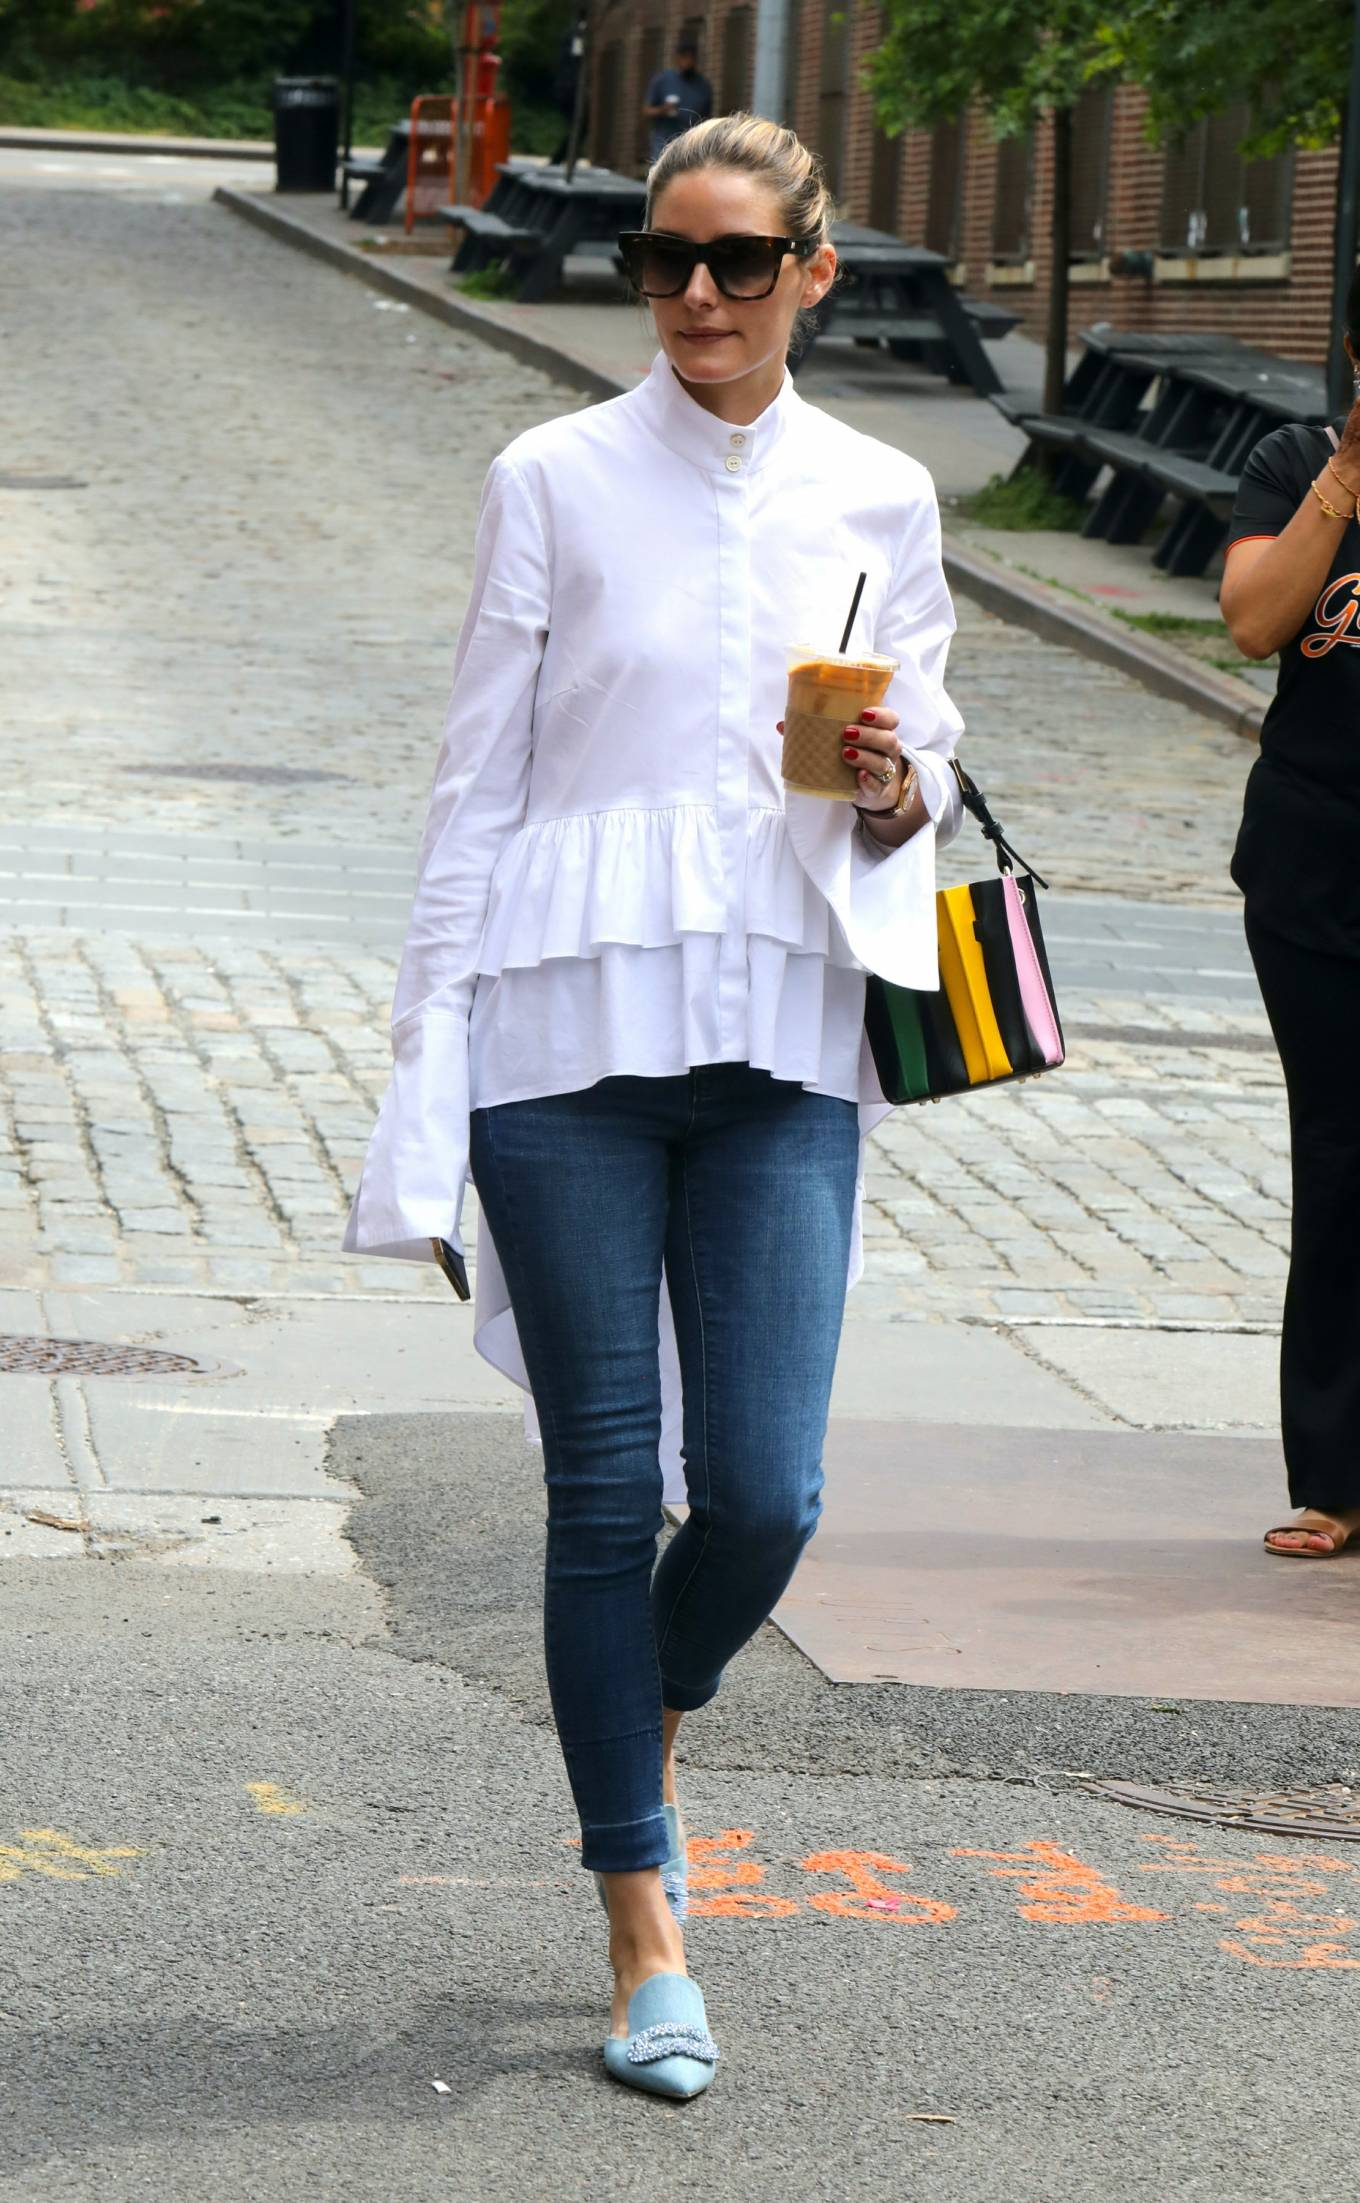 Olivia Palermo - Out in skinny jeans while getting an iced coffee in New York